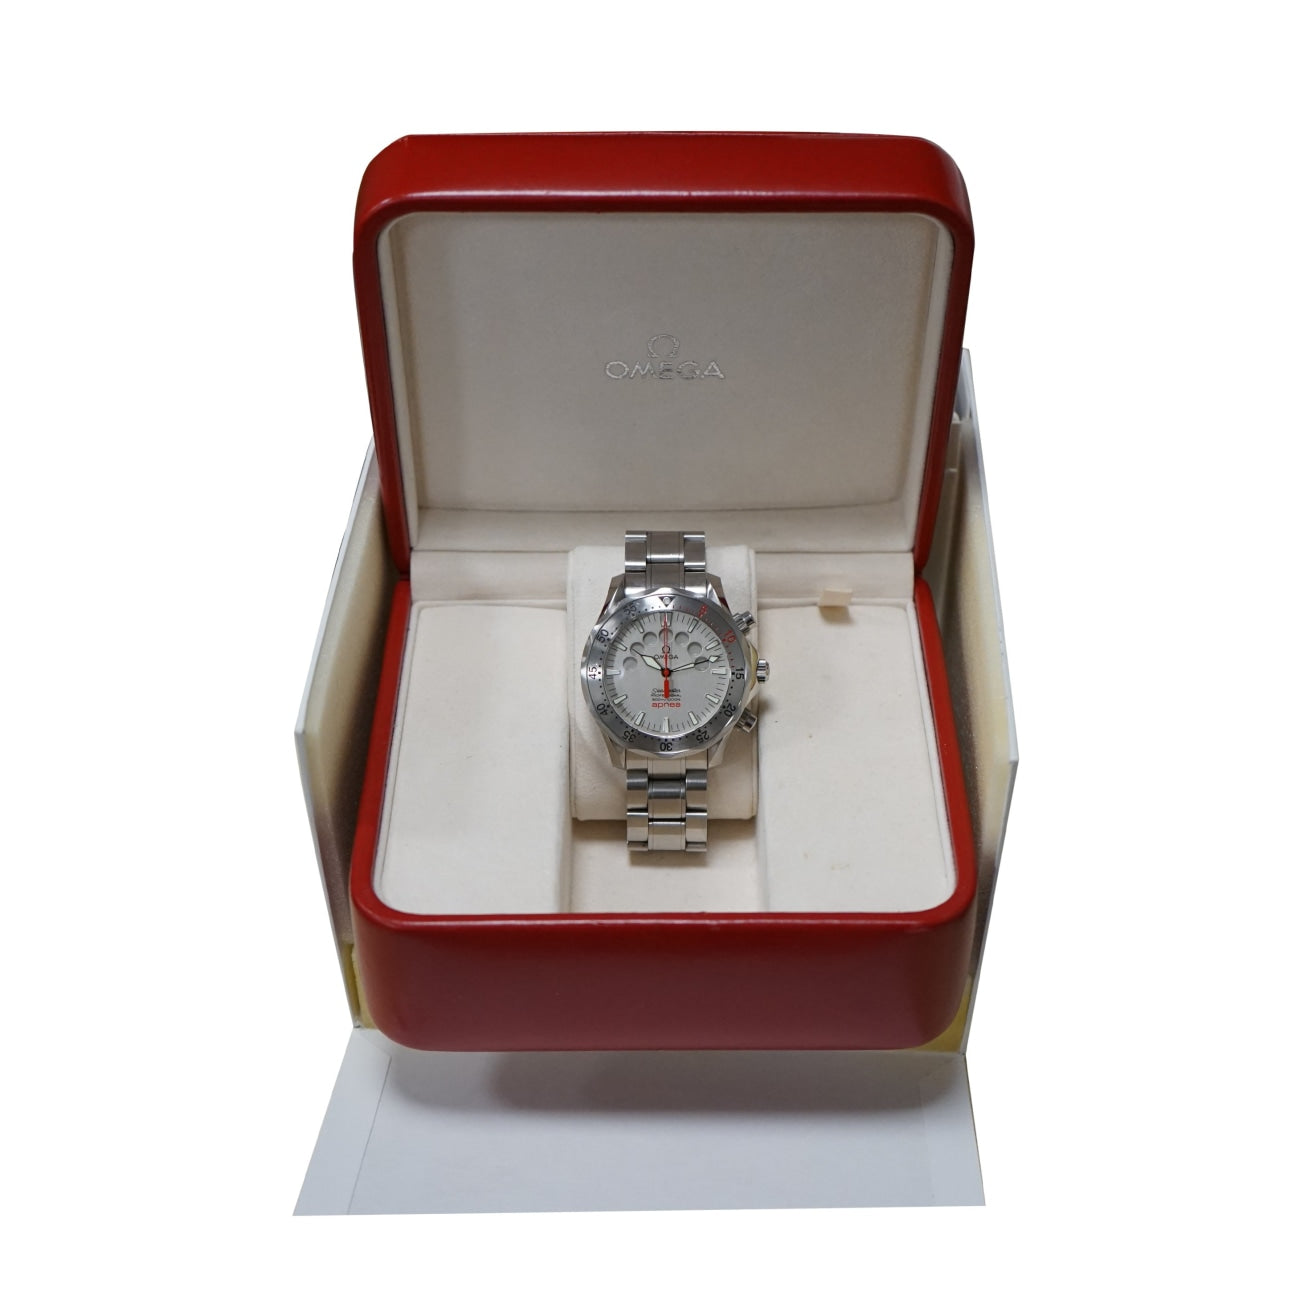 Pre-Owned Omega Watches - Seamaster Jacques Mayol Apnea in stainless steel | Manfredi Jewels